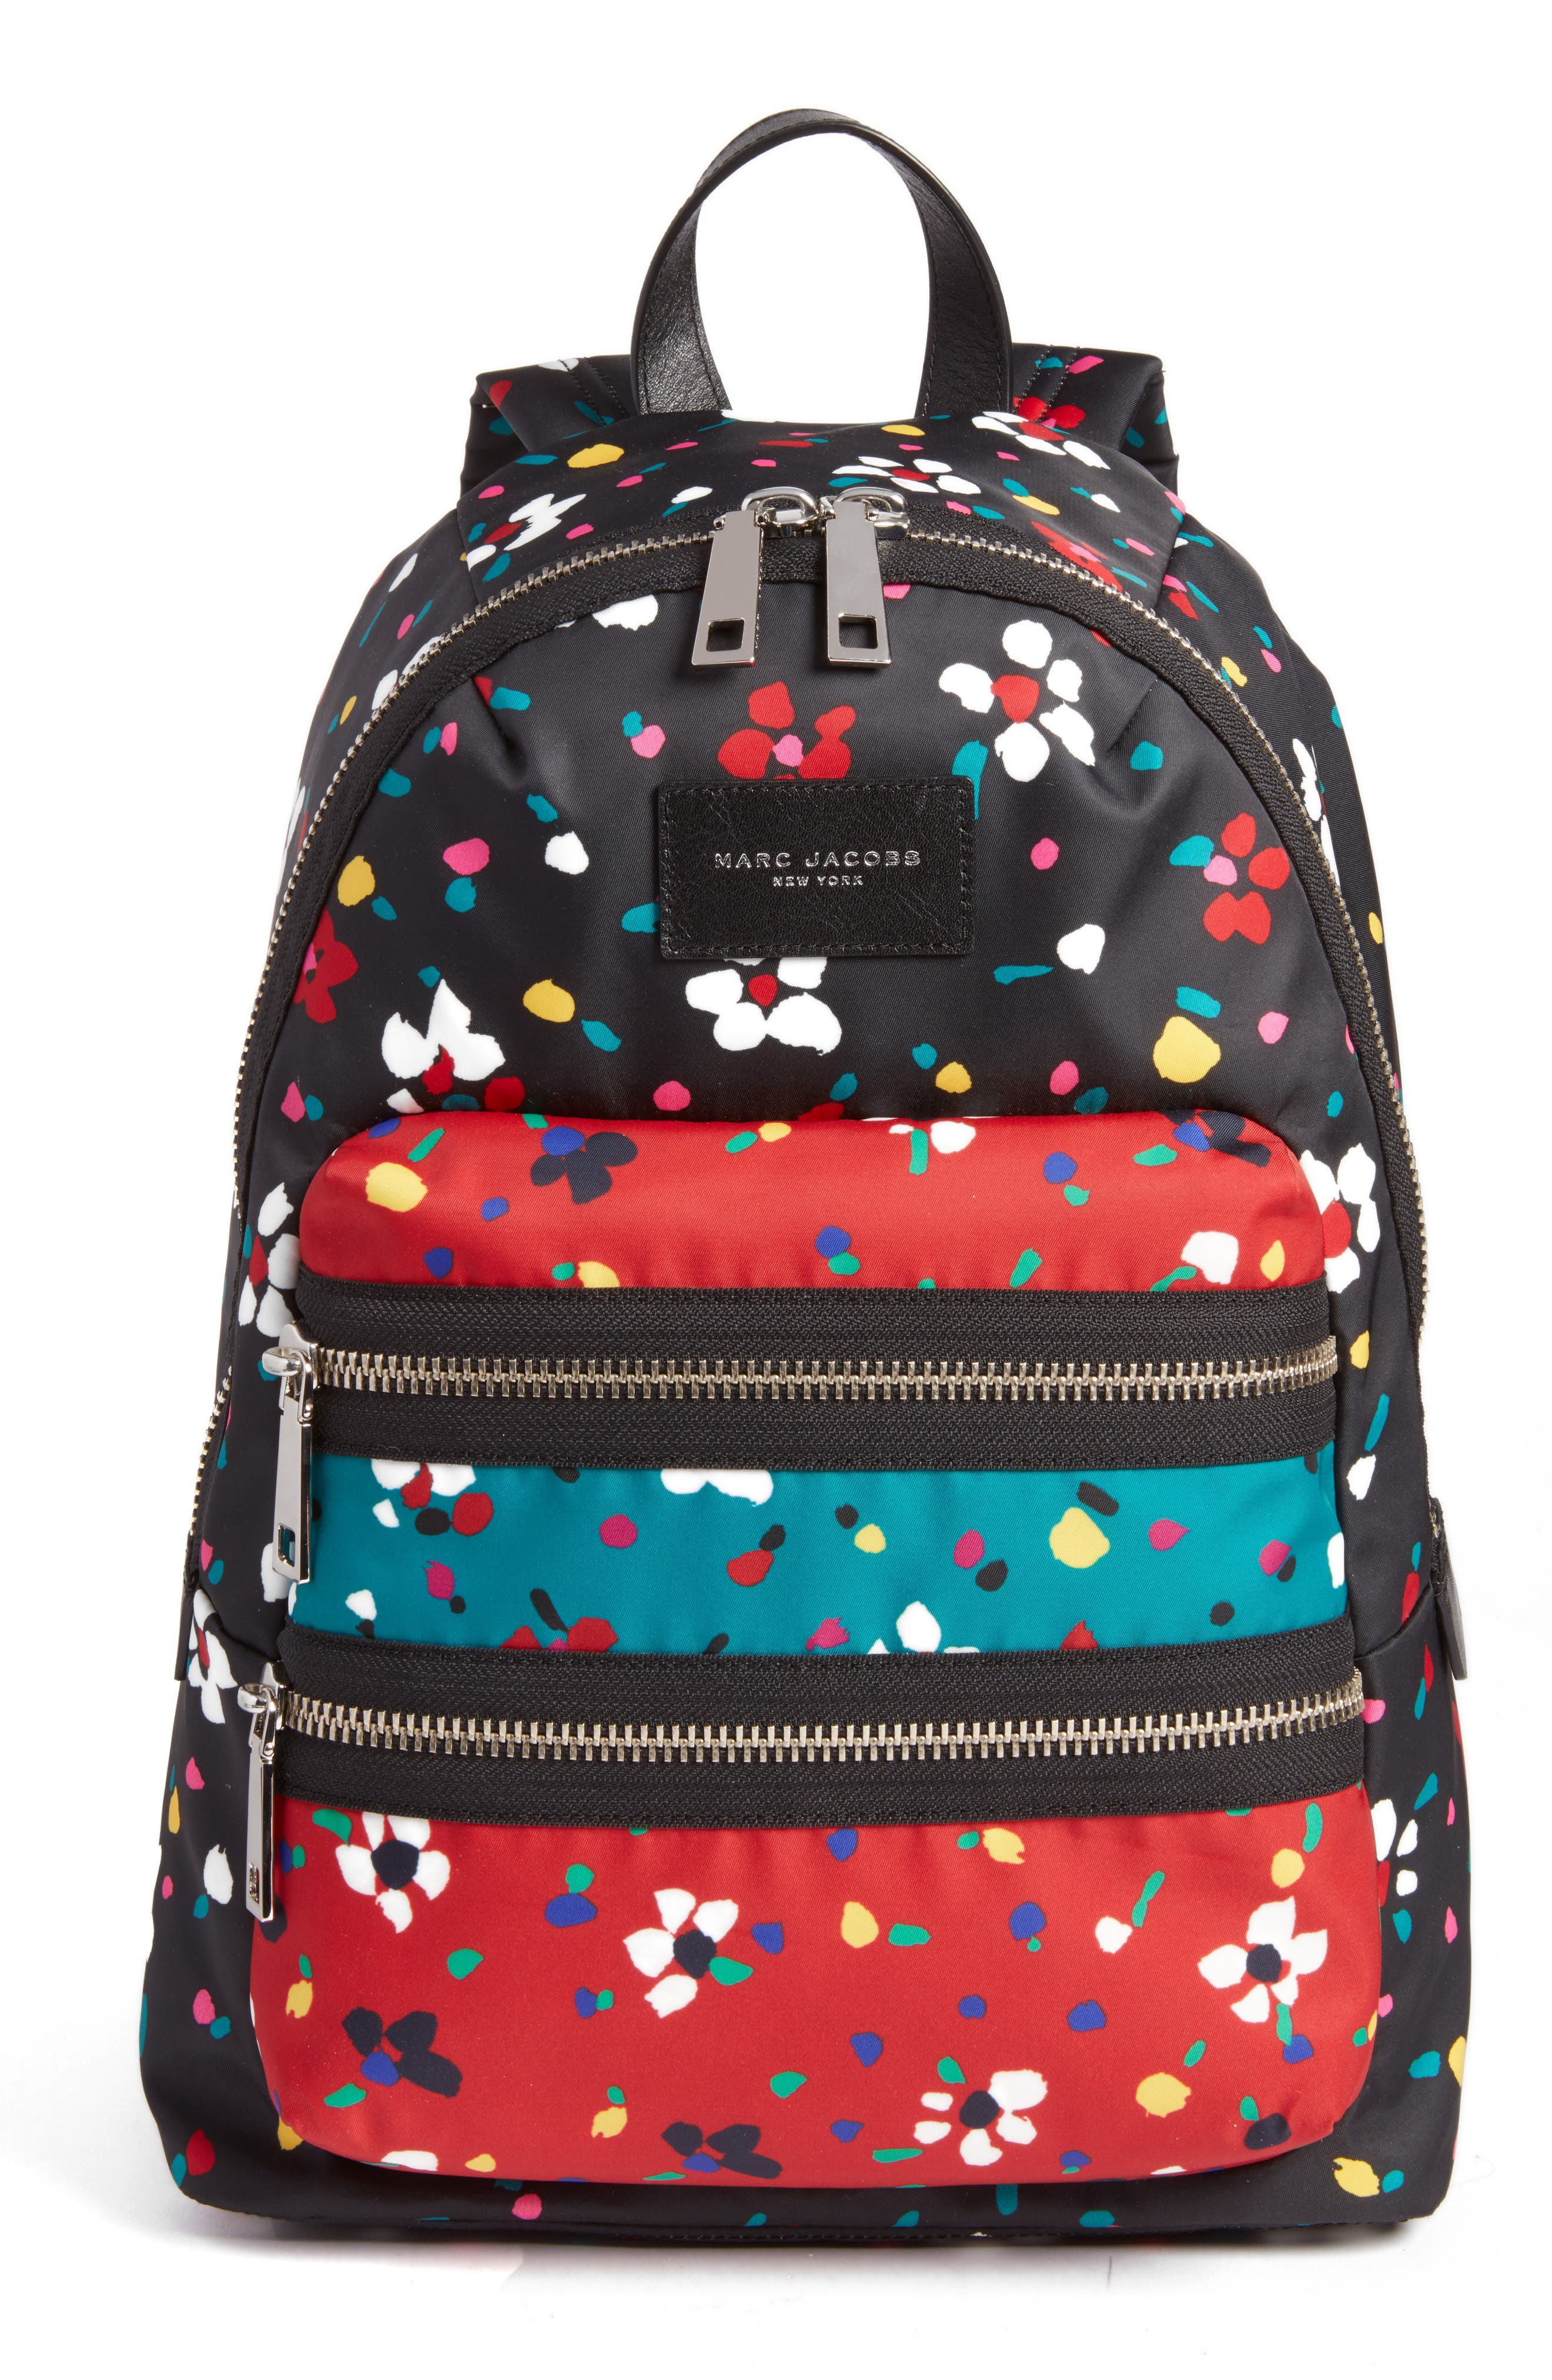 MARC JACOBS Biker Floral Print Backpack (Nordstrom Exclusive)